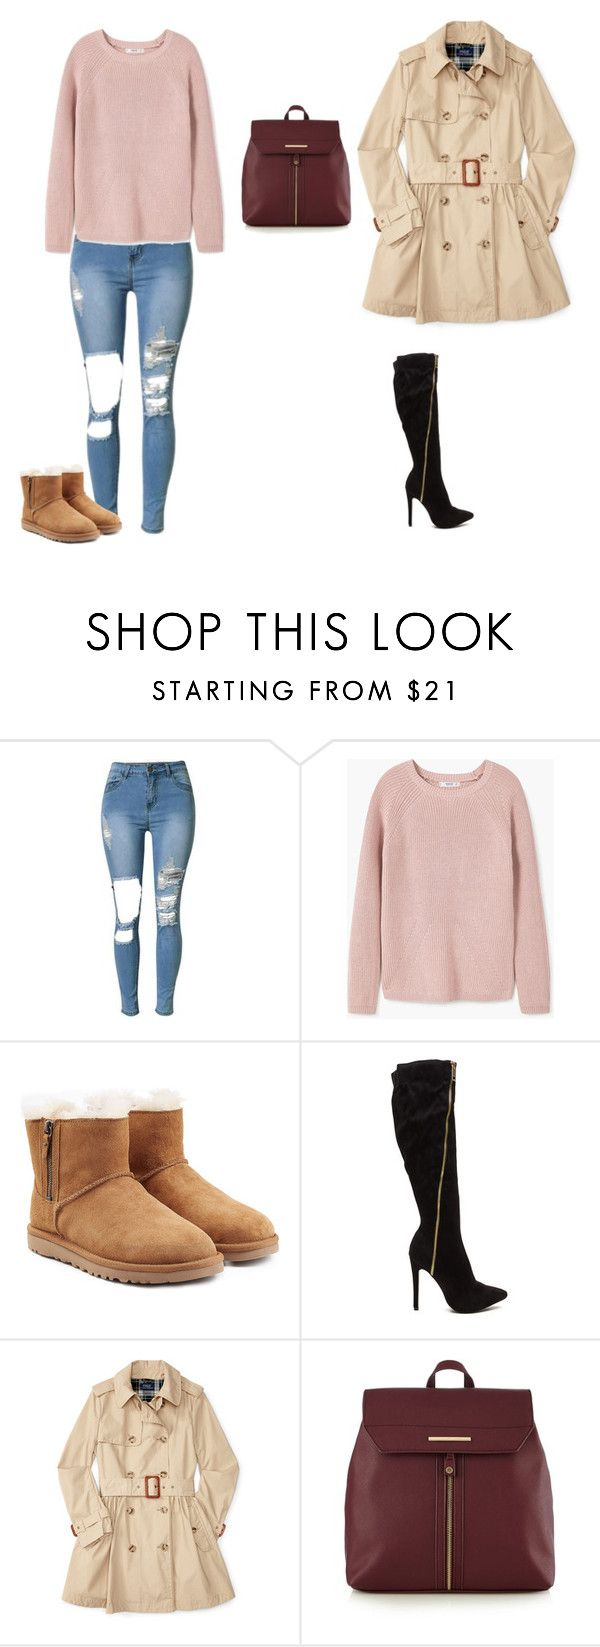 """""""2 in 1 Fall Outfits That Can Be Dressed Up & Down Easy"""" by hammiegrl on Polyvore featuring MANGO, UGG and Red Herring"""